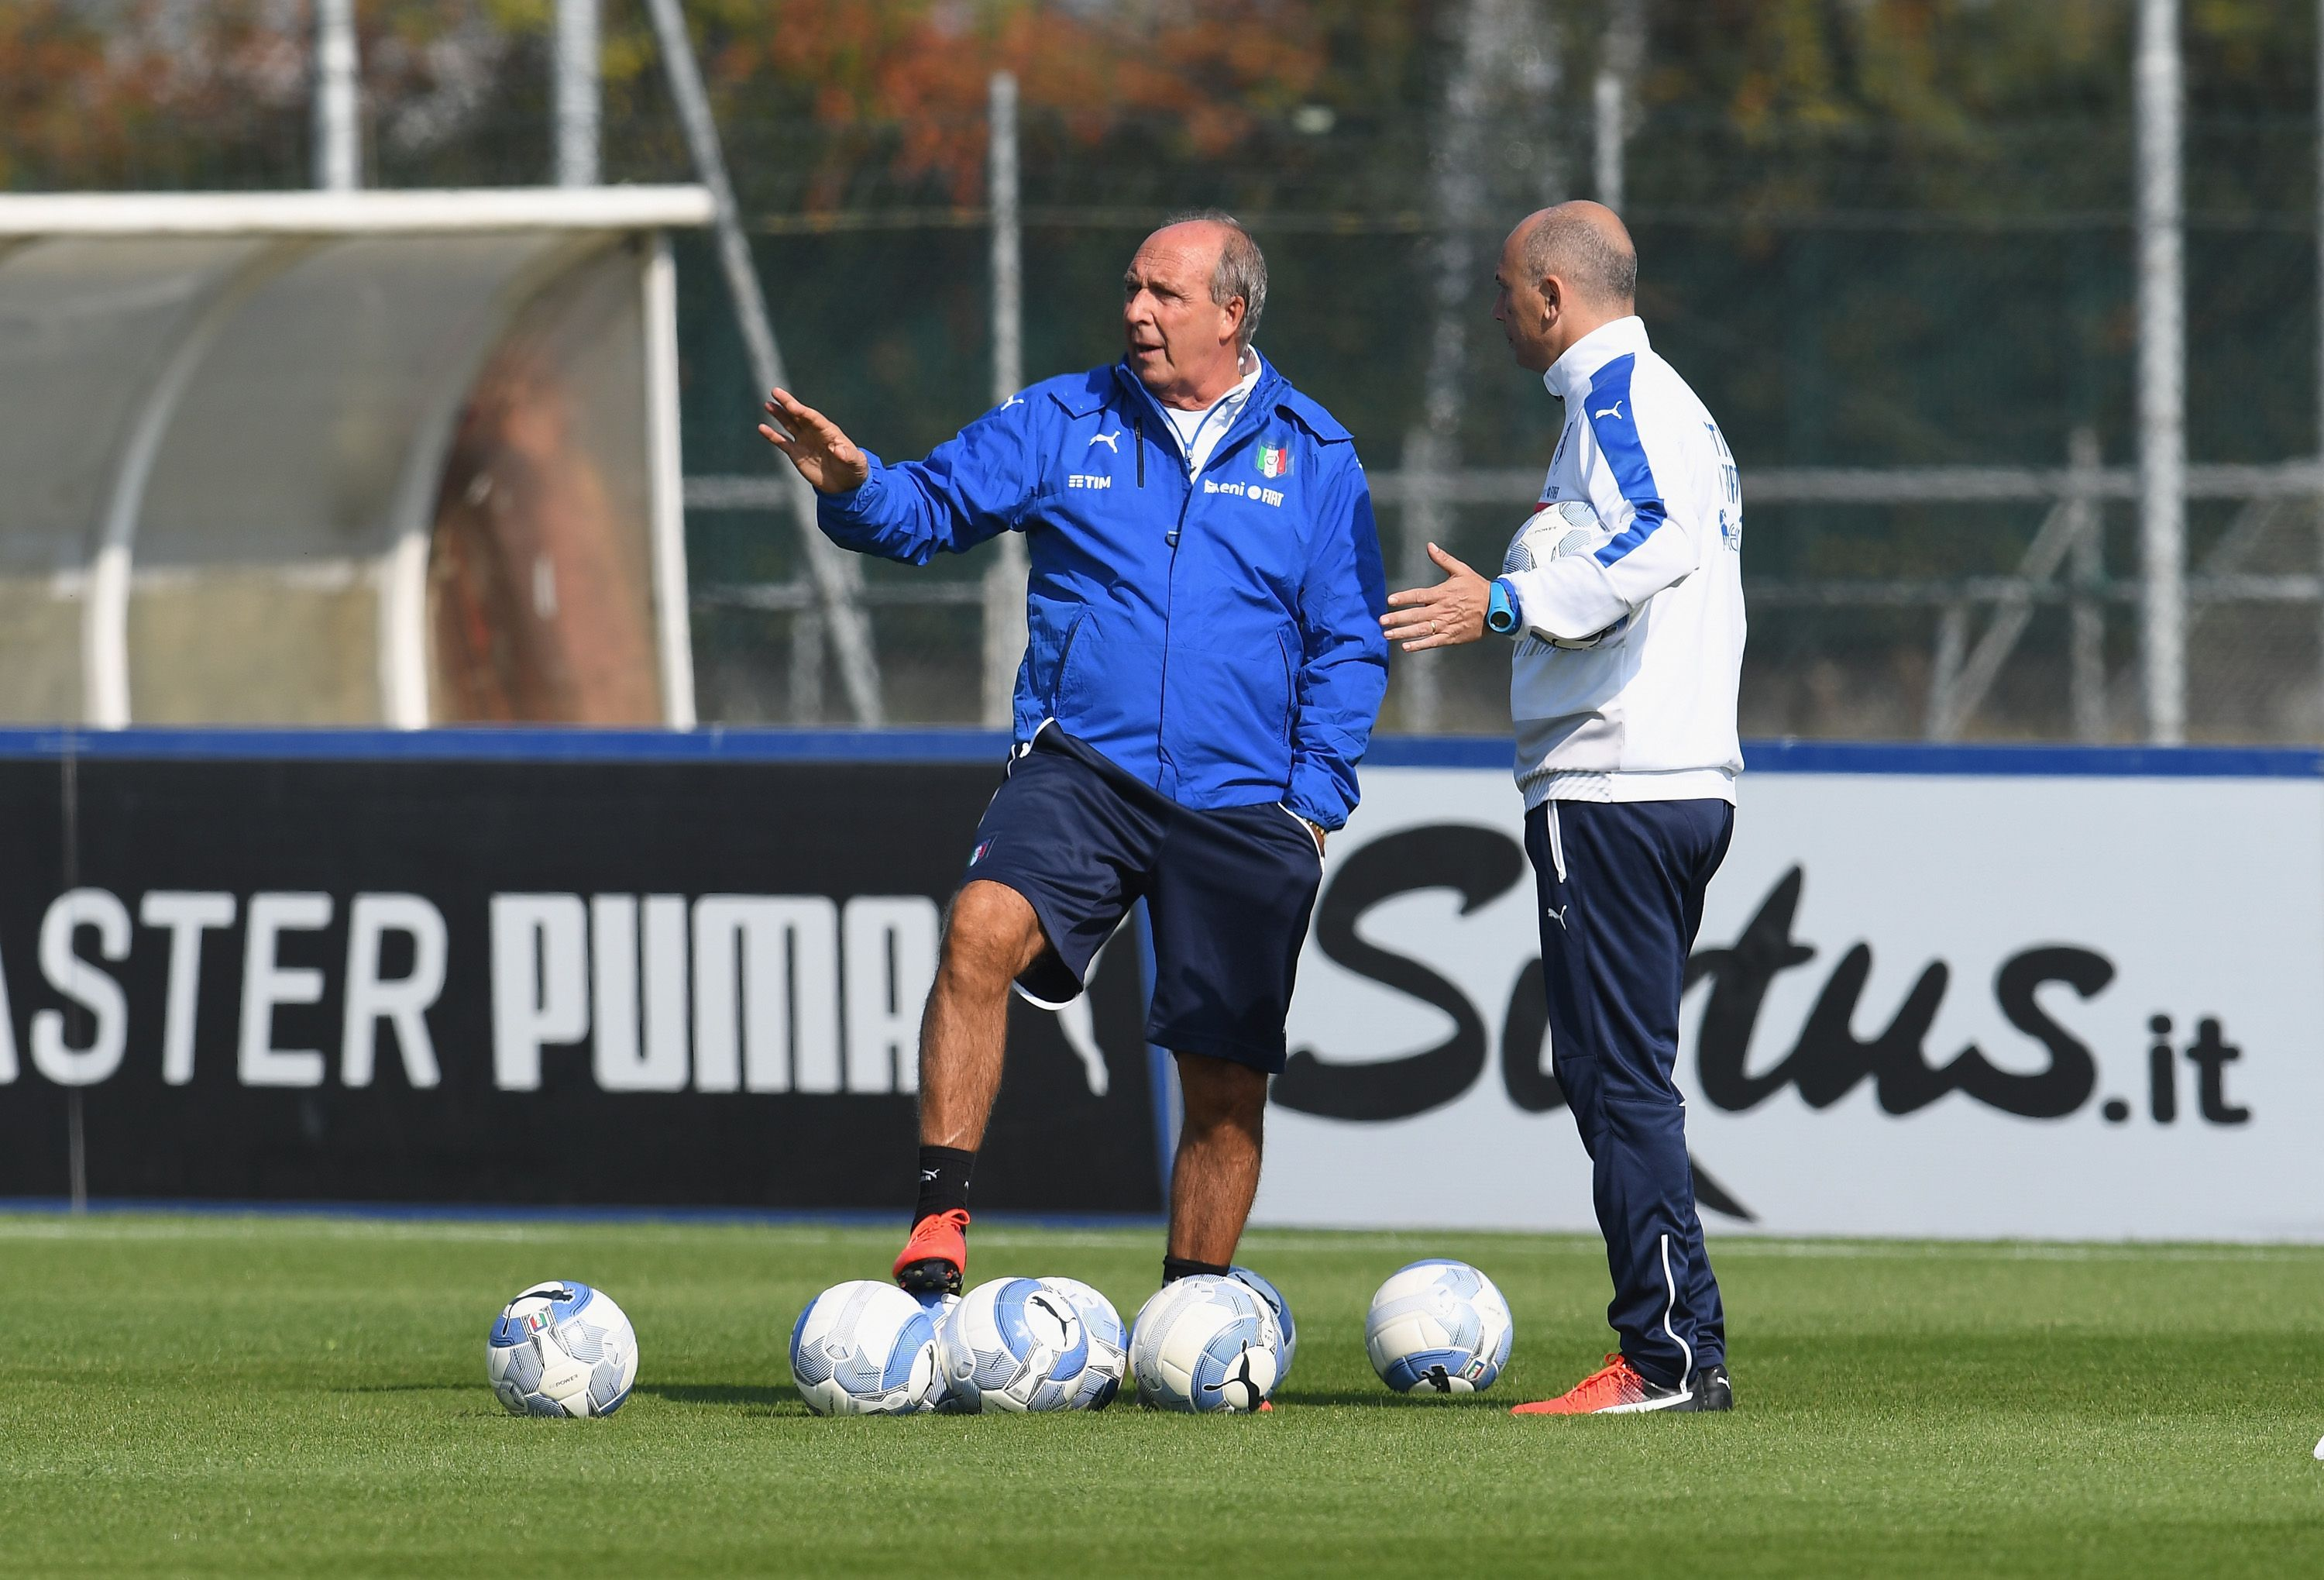 VINOVO, ITALY - OCTOBER 07:  Head coach Giampiero Ventura attends an Italy training session at Juventus Center Vinovo on October 7, 2016 in Vinovo, Italy.  (Photo by Claudio Villa/Getty Images)